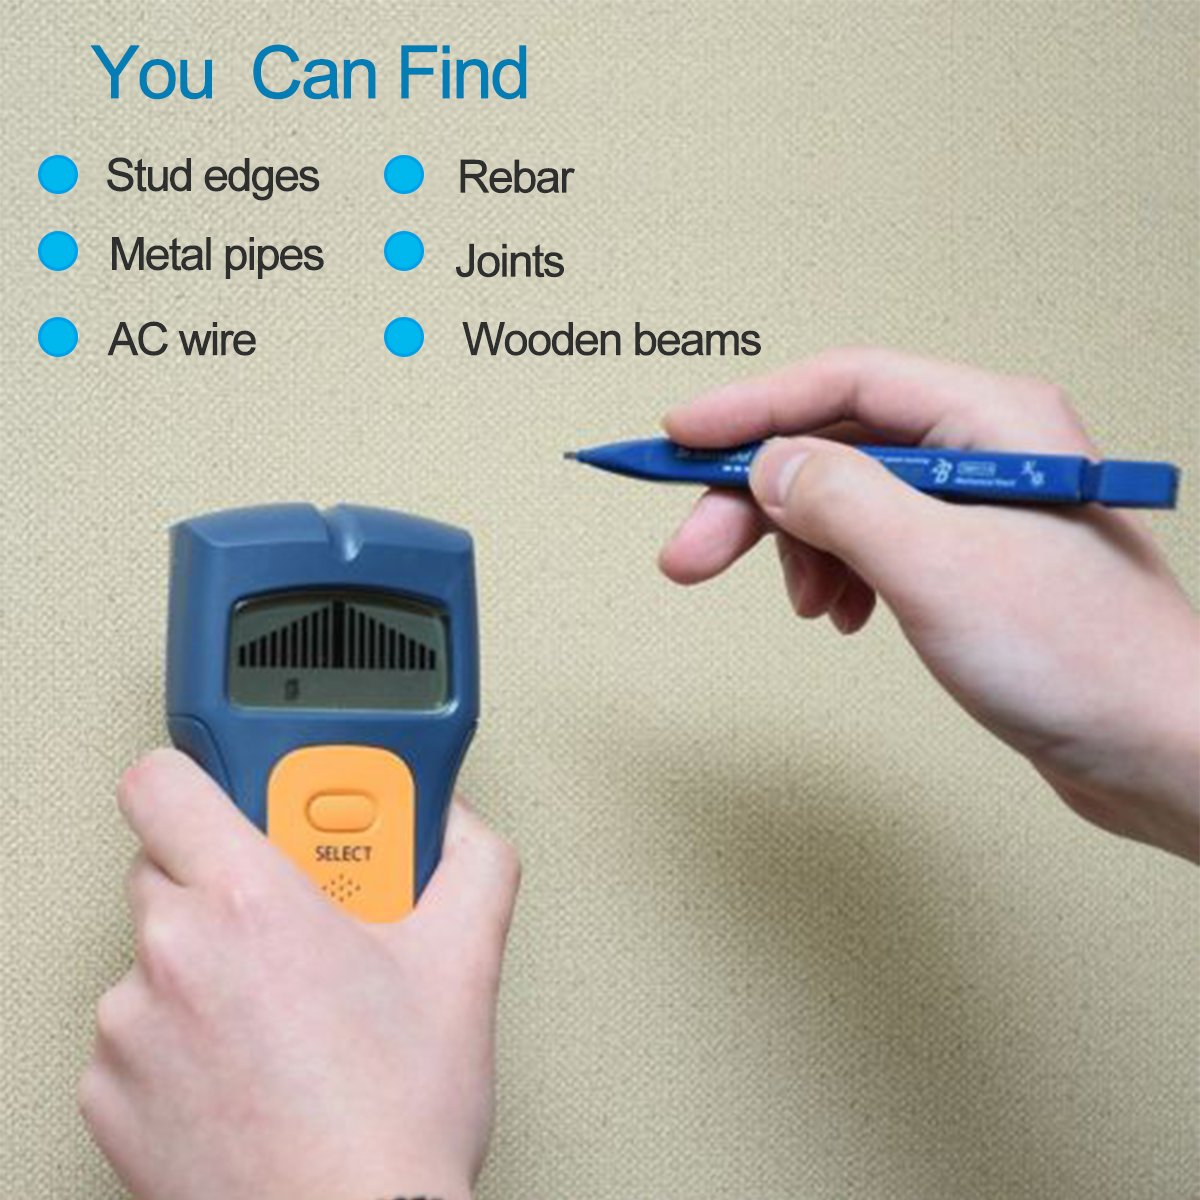 Mochiglory 3 in 1 Stud Finder Stud Sensor Digital Multi-Scanner for Wall Studs Metal Detection and AC Live Wire by Mochiglory (Image #6)